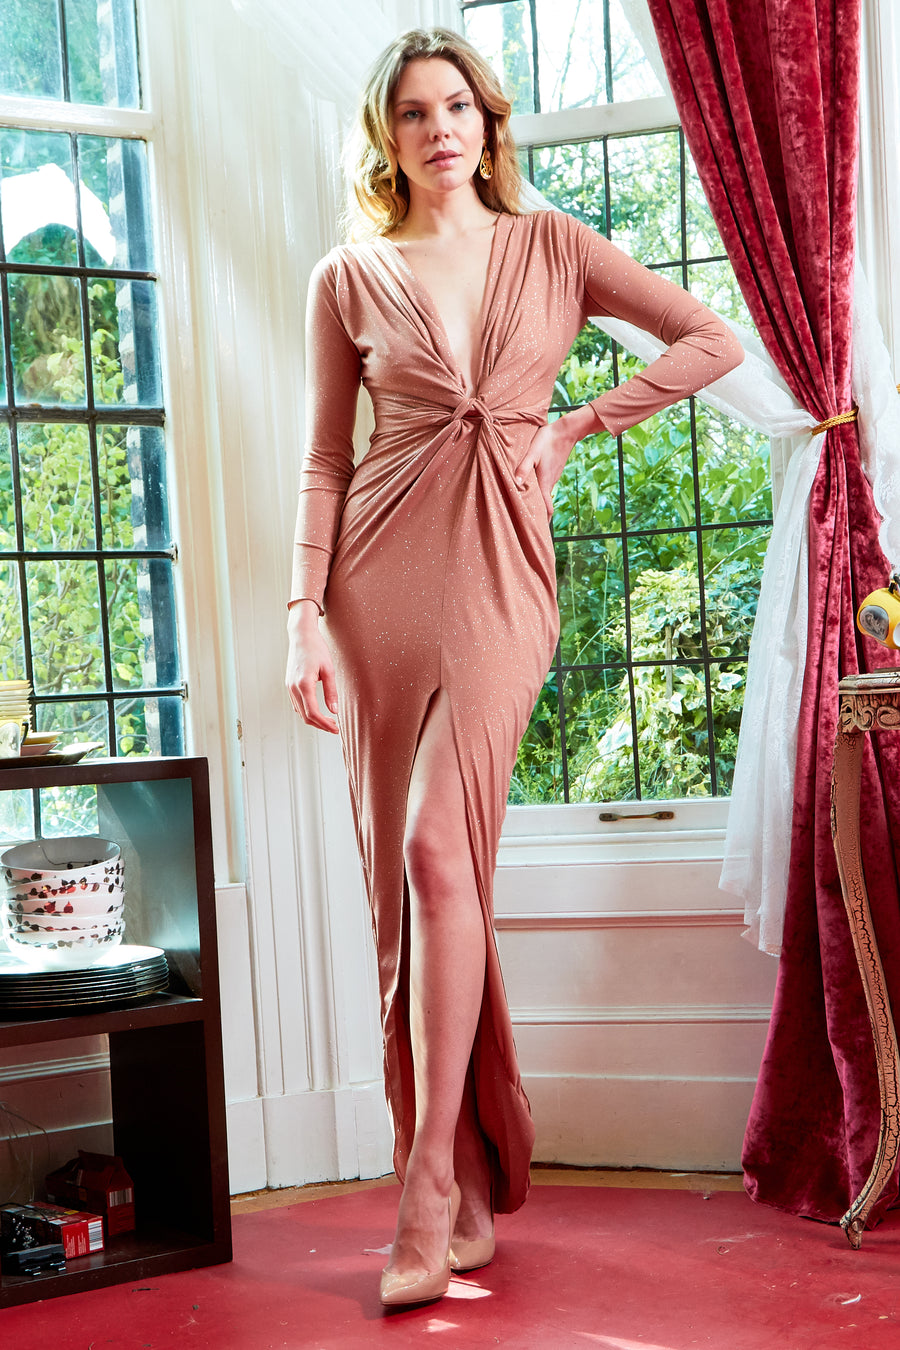 Rose Gold Glittery Plunge Front Knot Floor-Length Dress